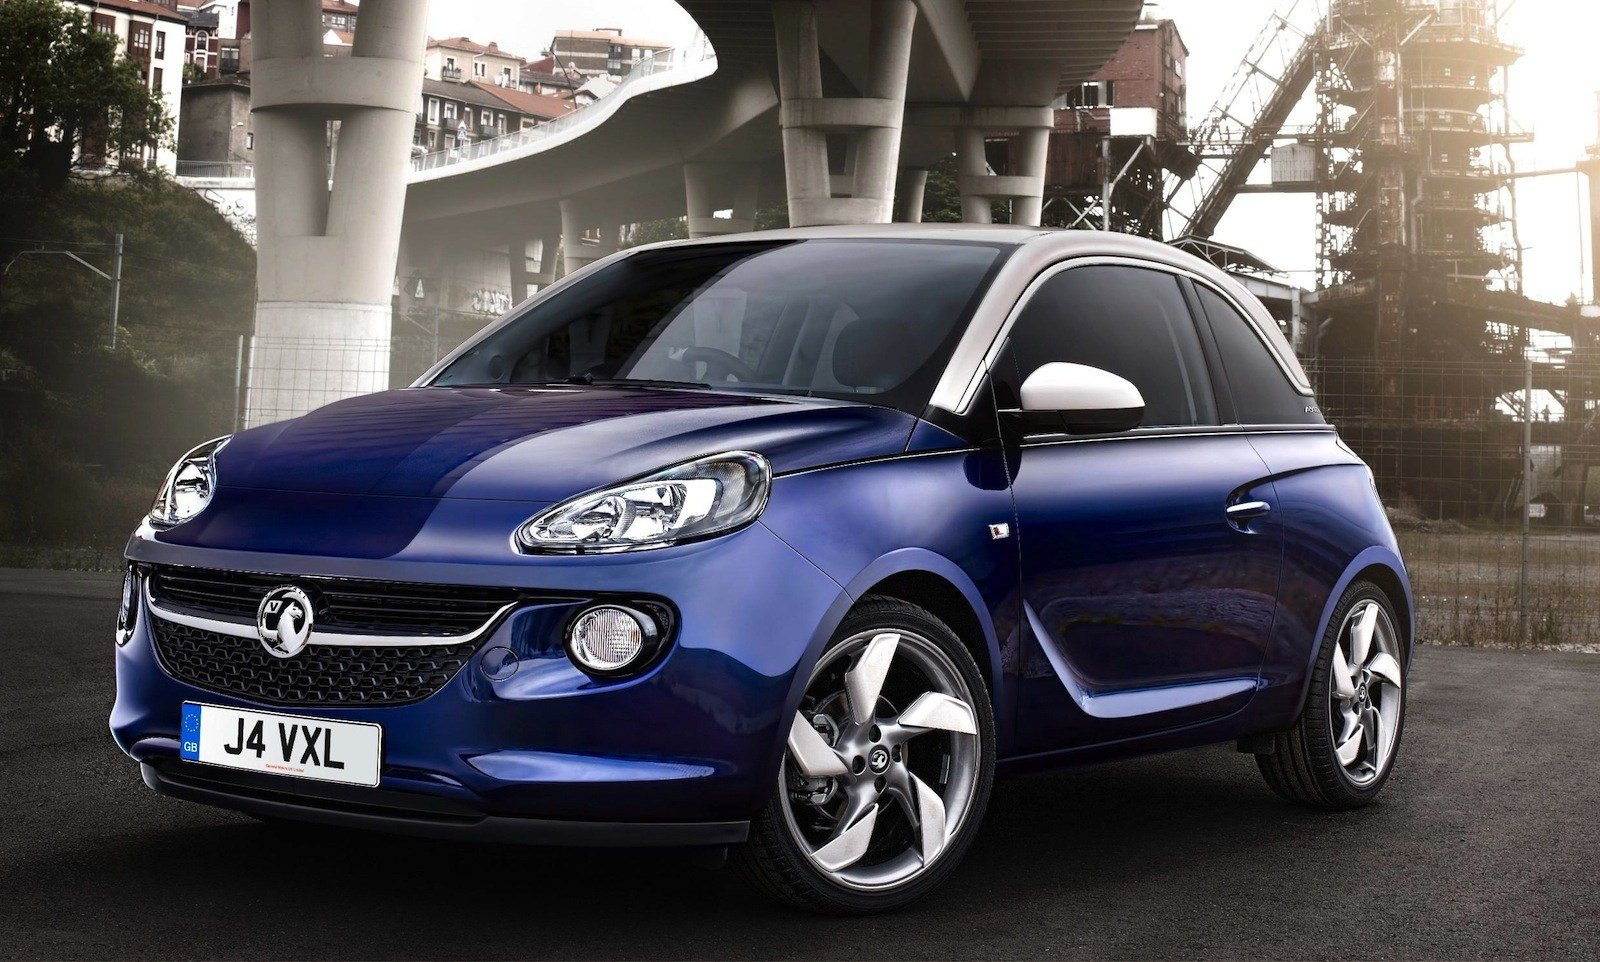 New Opel Adam Stylish City Car Not For Oz Photos 1 Of 11 On This Month